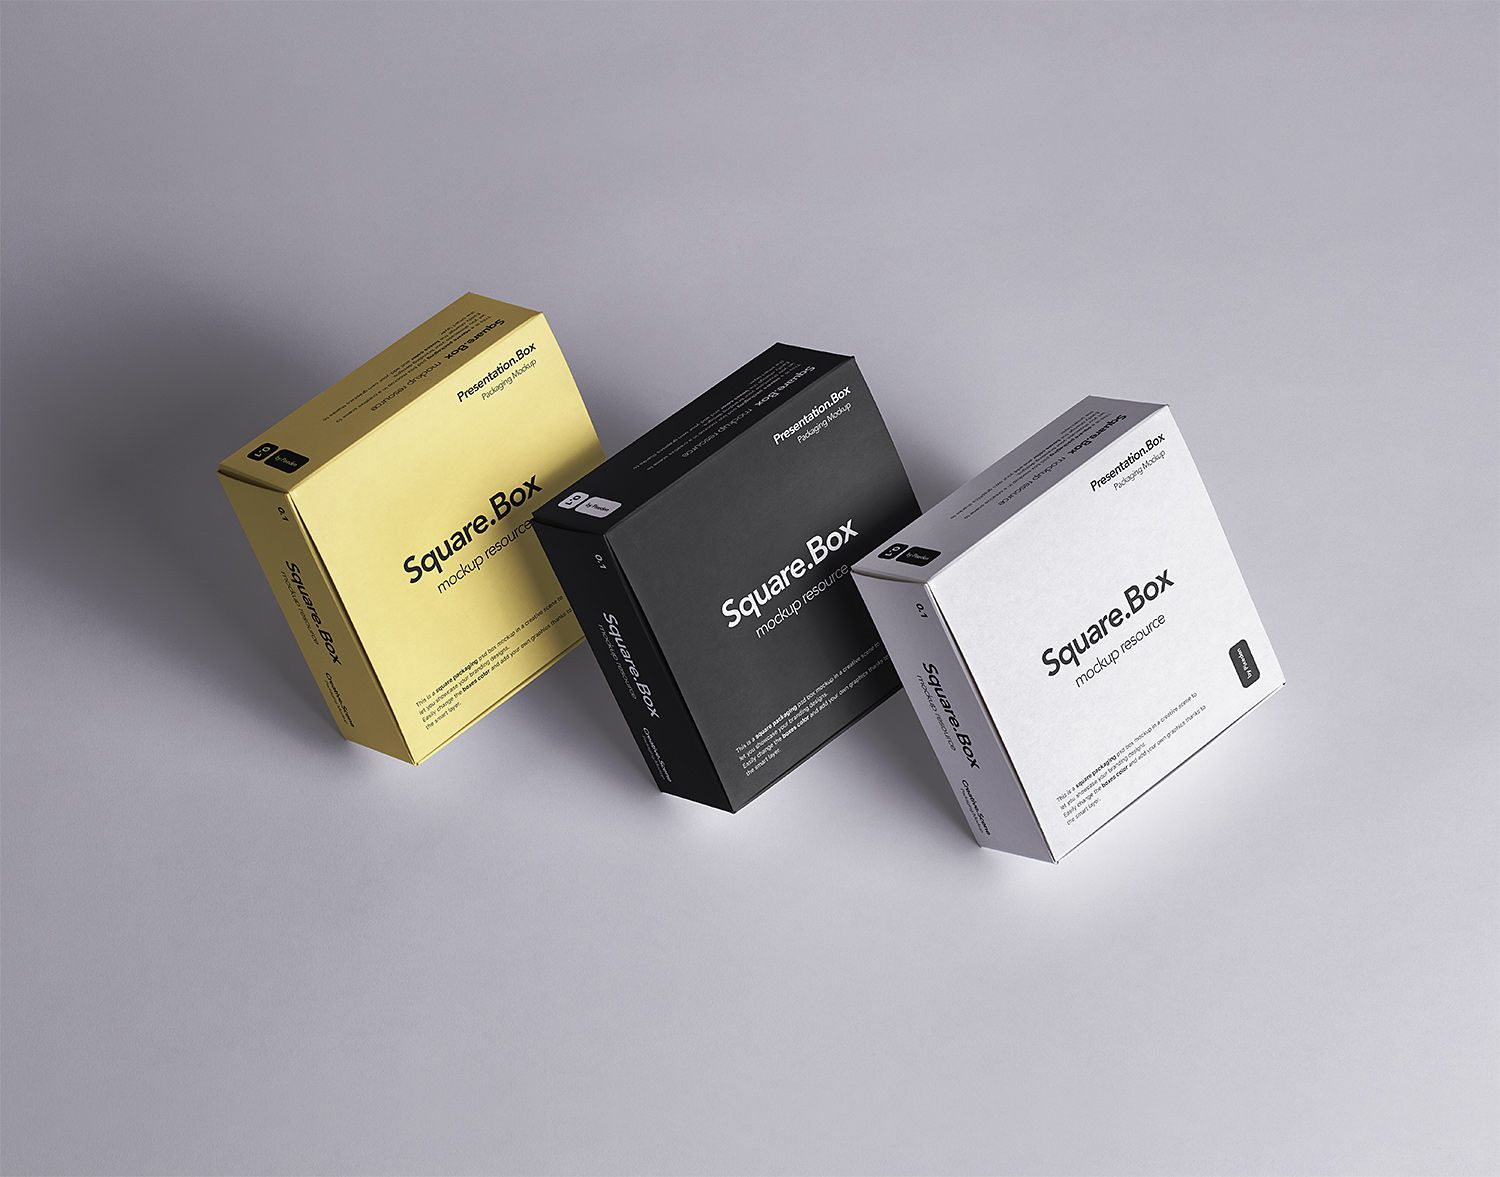 Download Three Square Boxes Packaging Free Mockup To Showcase Your Packaging Design In A Photorealistic Look Psd File Consists Packaging Mockup Box Mockup Free Mockup